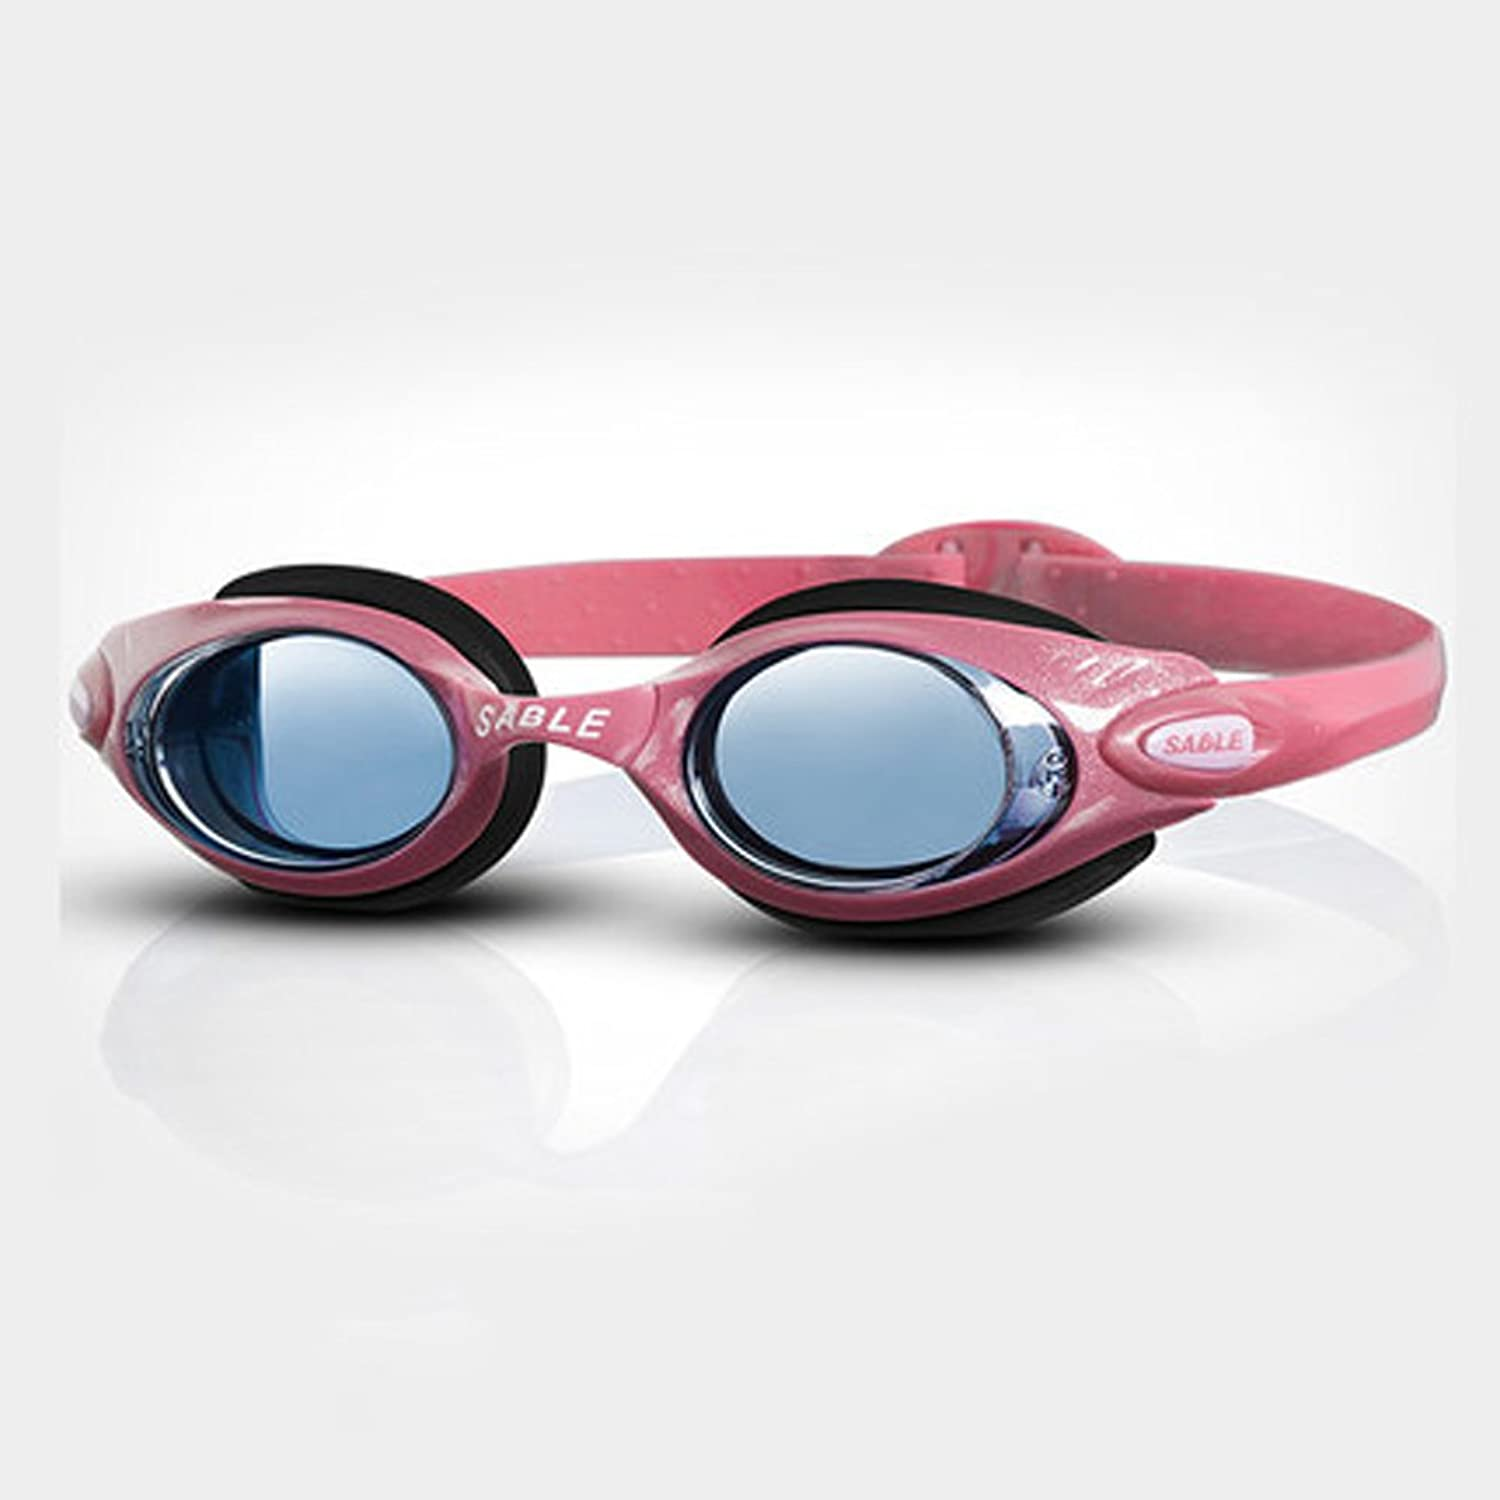 LE Professional swimming goggles Waterproof and anti-fog swimming goggles